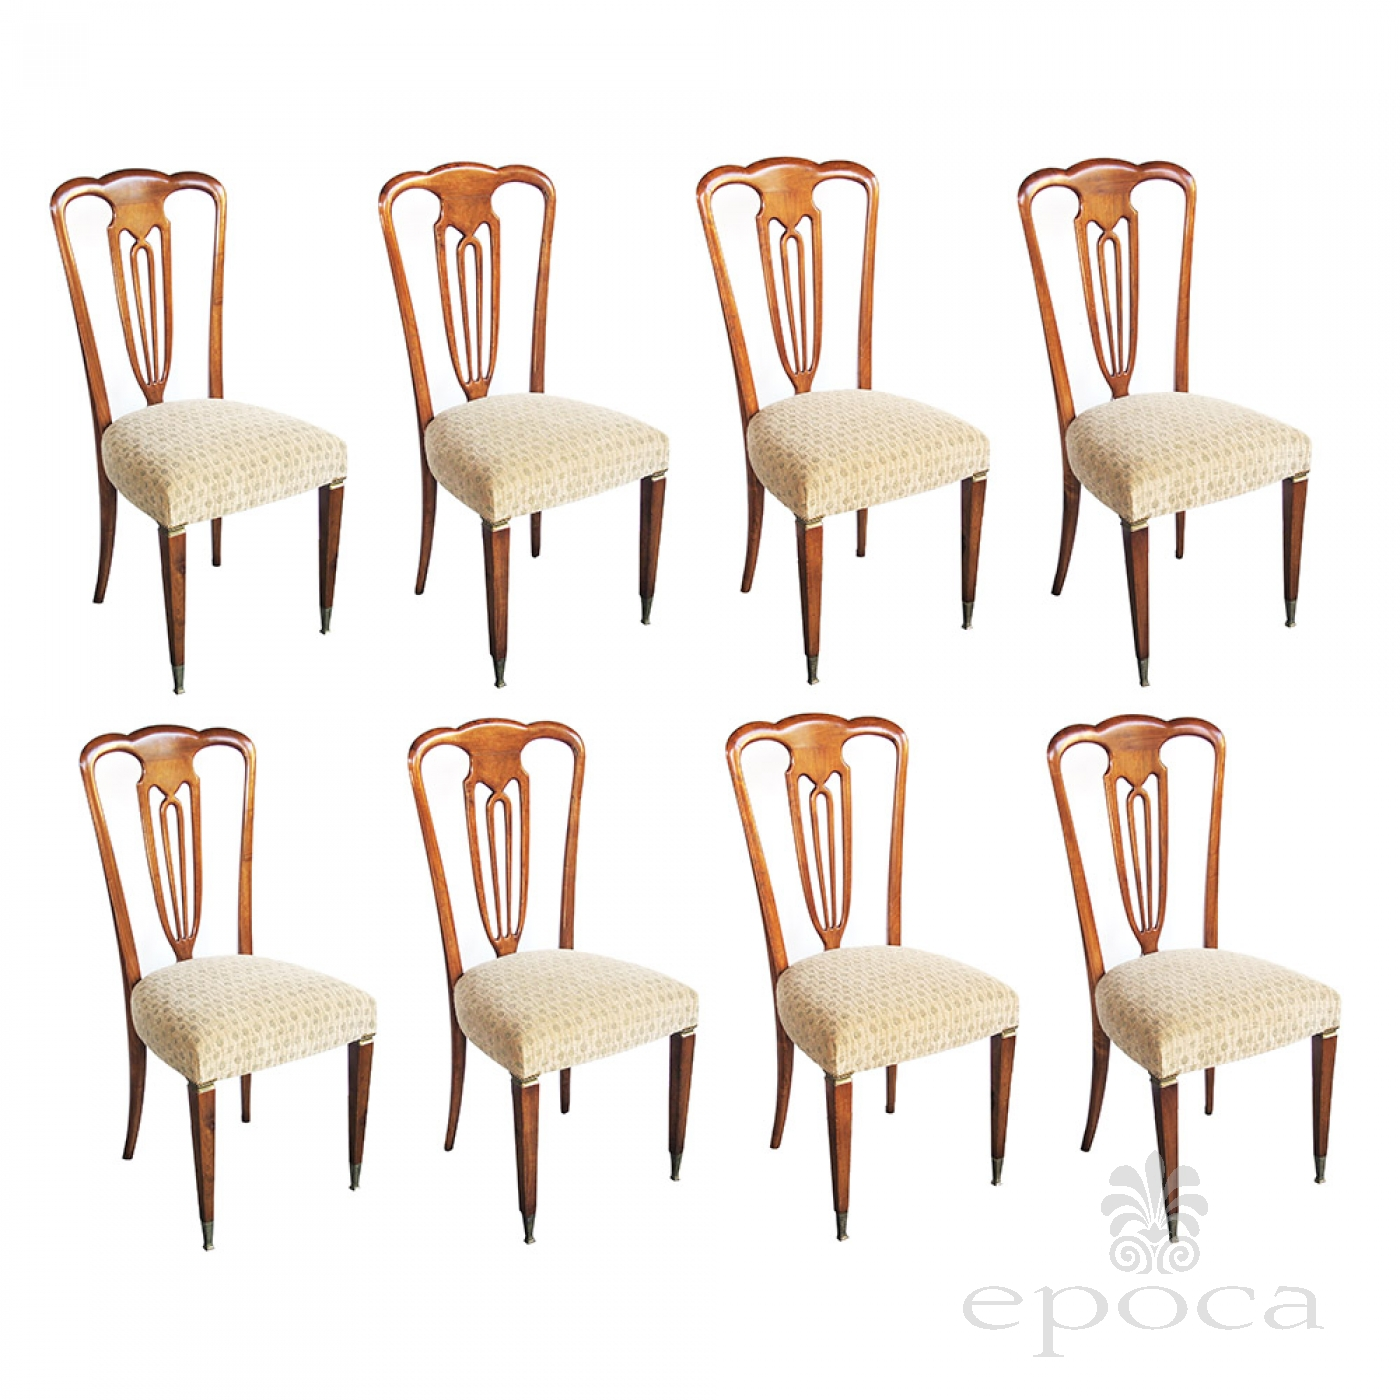 A Stylish Set Of 8 Italian 1940 S Pear Wood Shield Back Dining Chairss By Emo